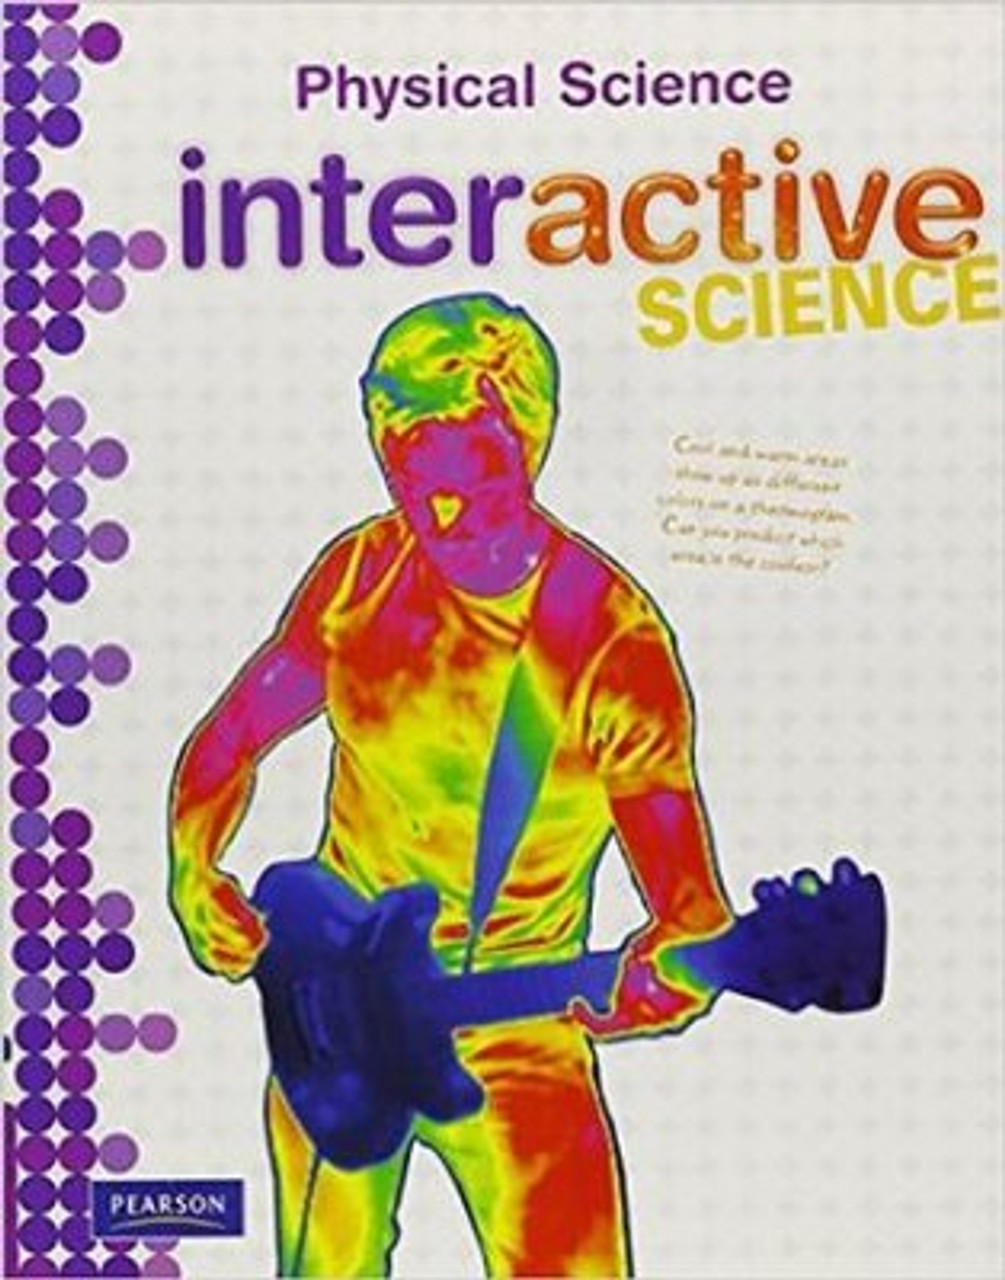 medium resolution of Interactive Science Grades 6-8 Physical Science Student Workbook -  Classroom Resource Center